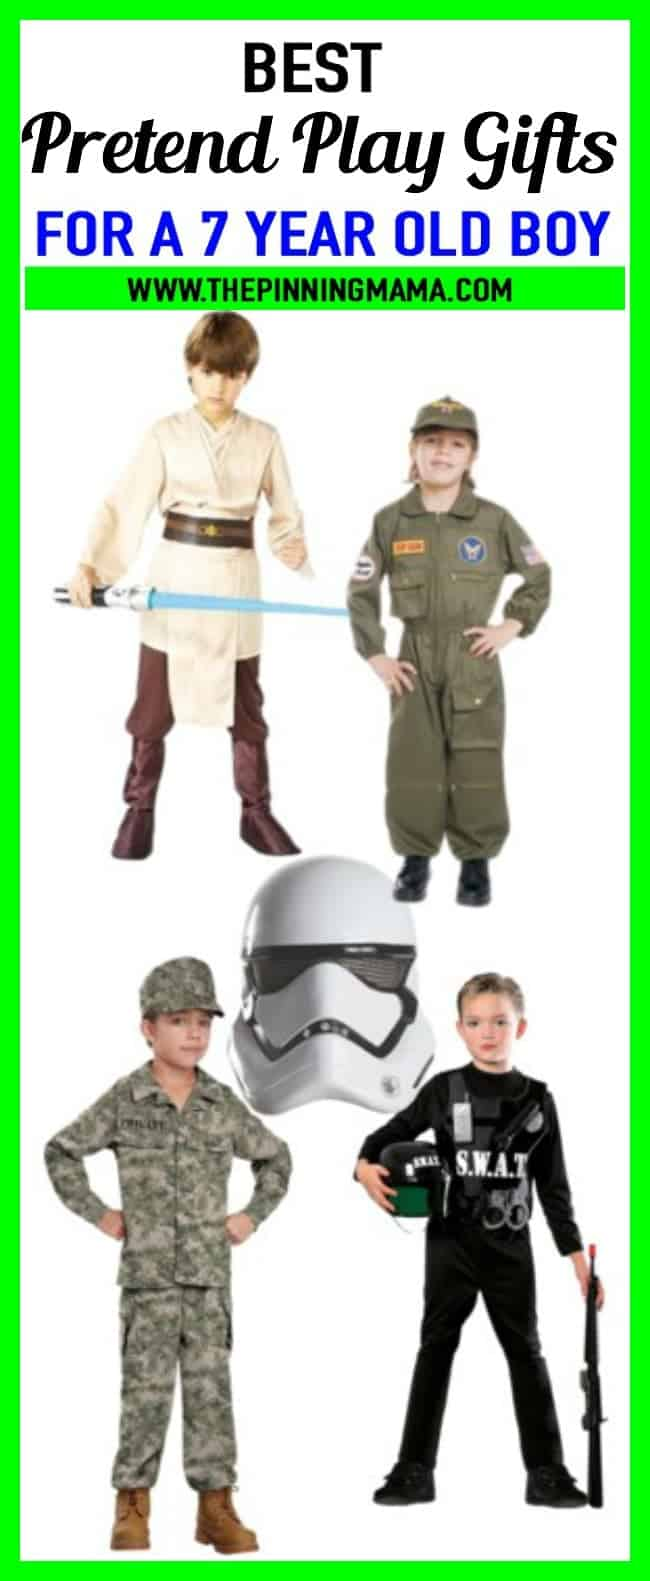 Best gift ideas for a 7 year old boy who loves dress up and pretend play! Includes pilot costumes, army, swat, star wars and more! Great ideas for birthday presents and Christmas presents